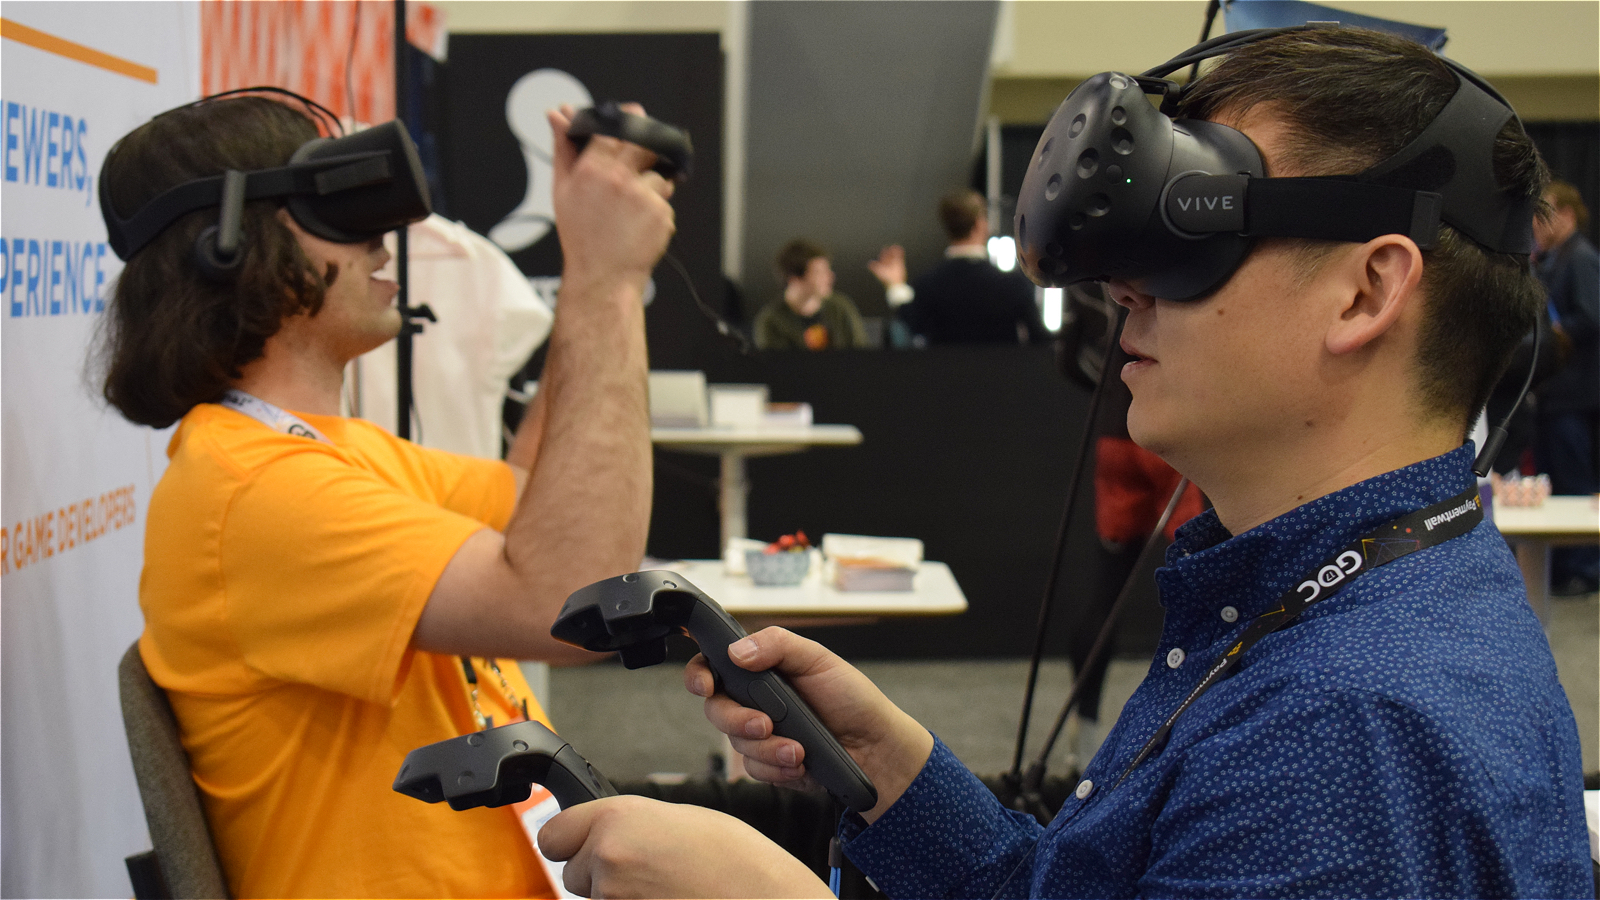 VR got more social at GDC